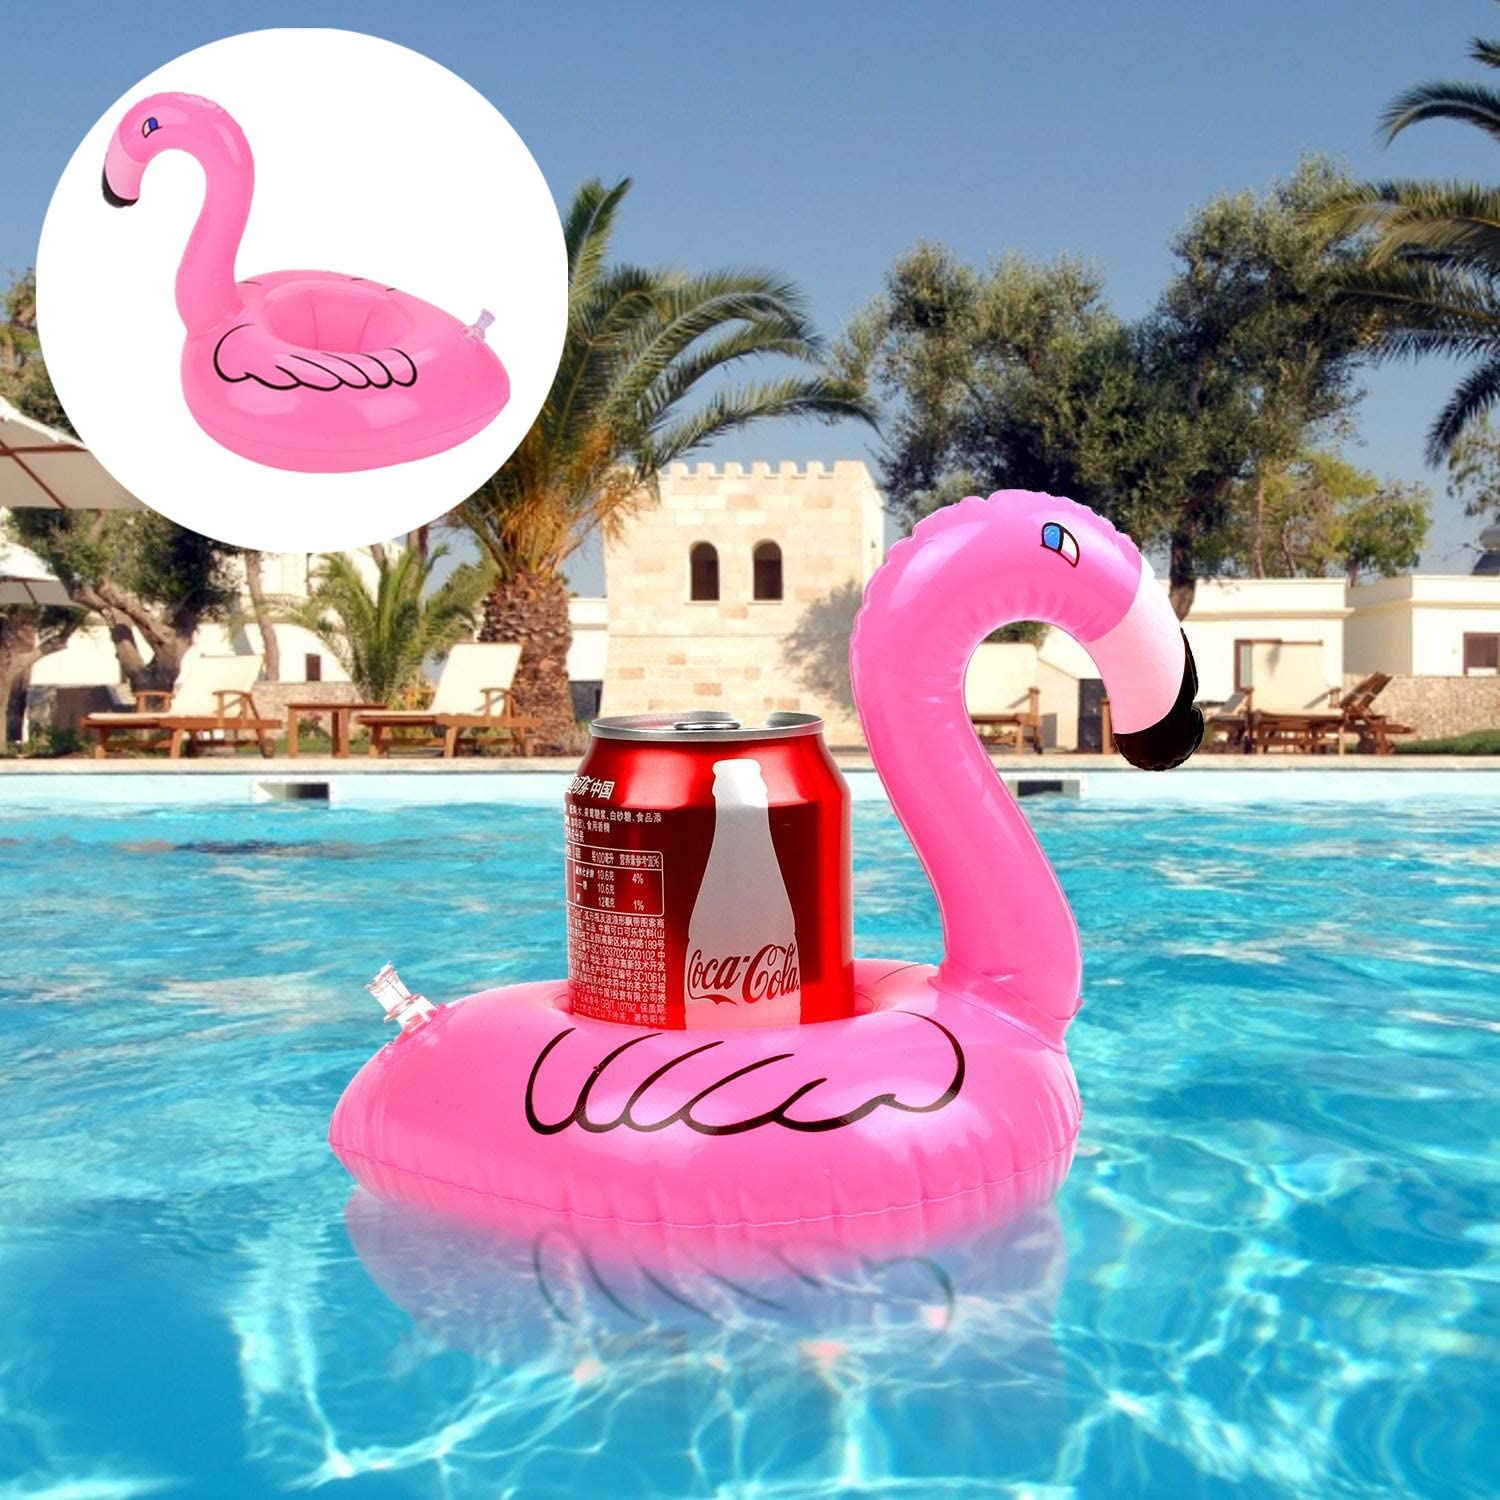 Flamingo Inflatable Drink Holder 21 Pack Drink Pool Floats Cup Holder Floats Inflatable Floating Coasters Float Coaster for Pool Party Water Fun